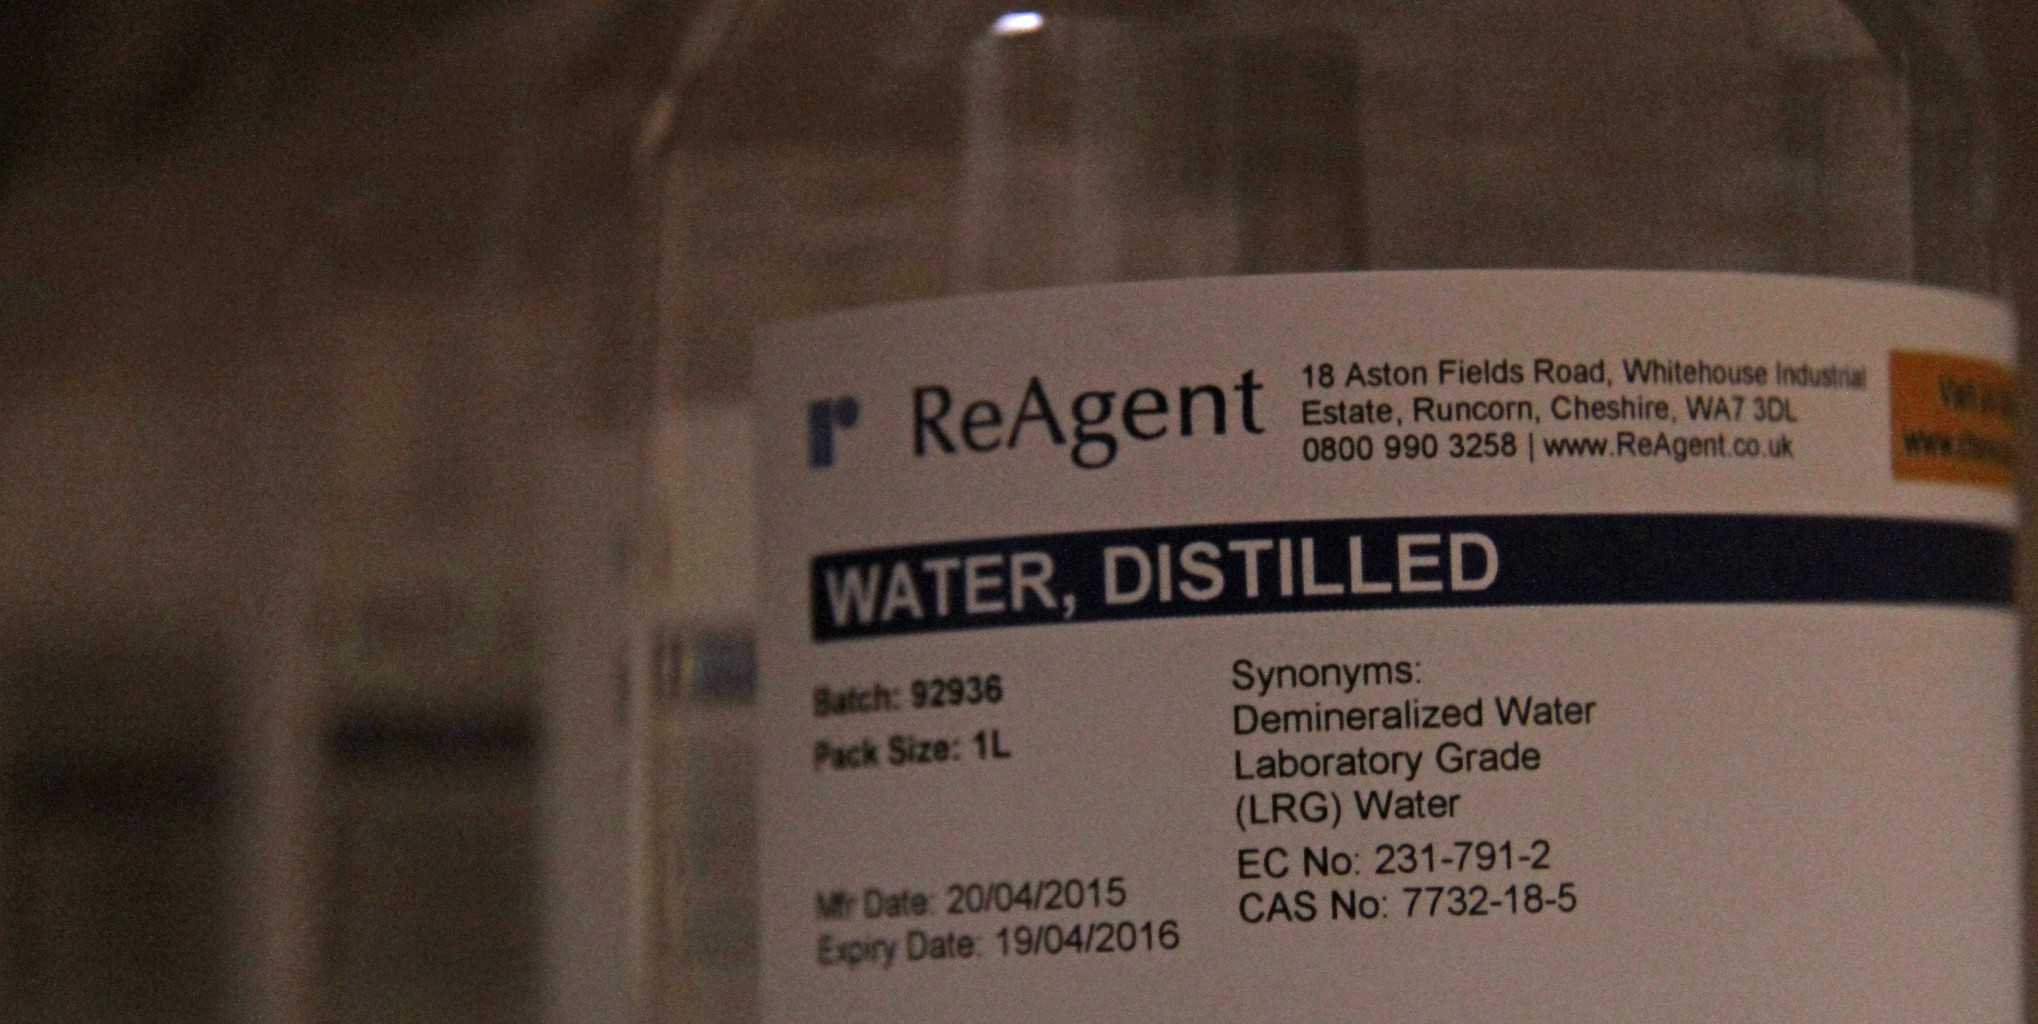 An example Reagent's distilled water product